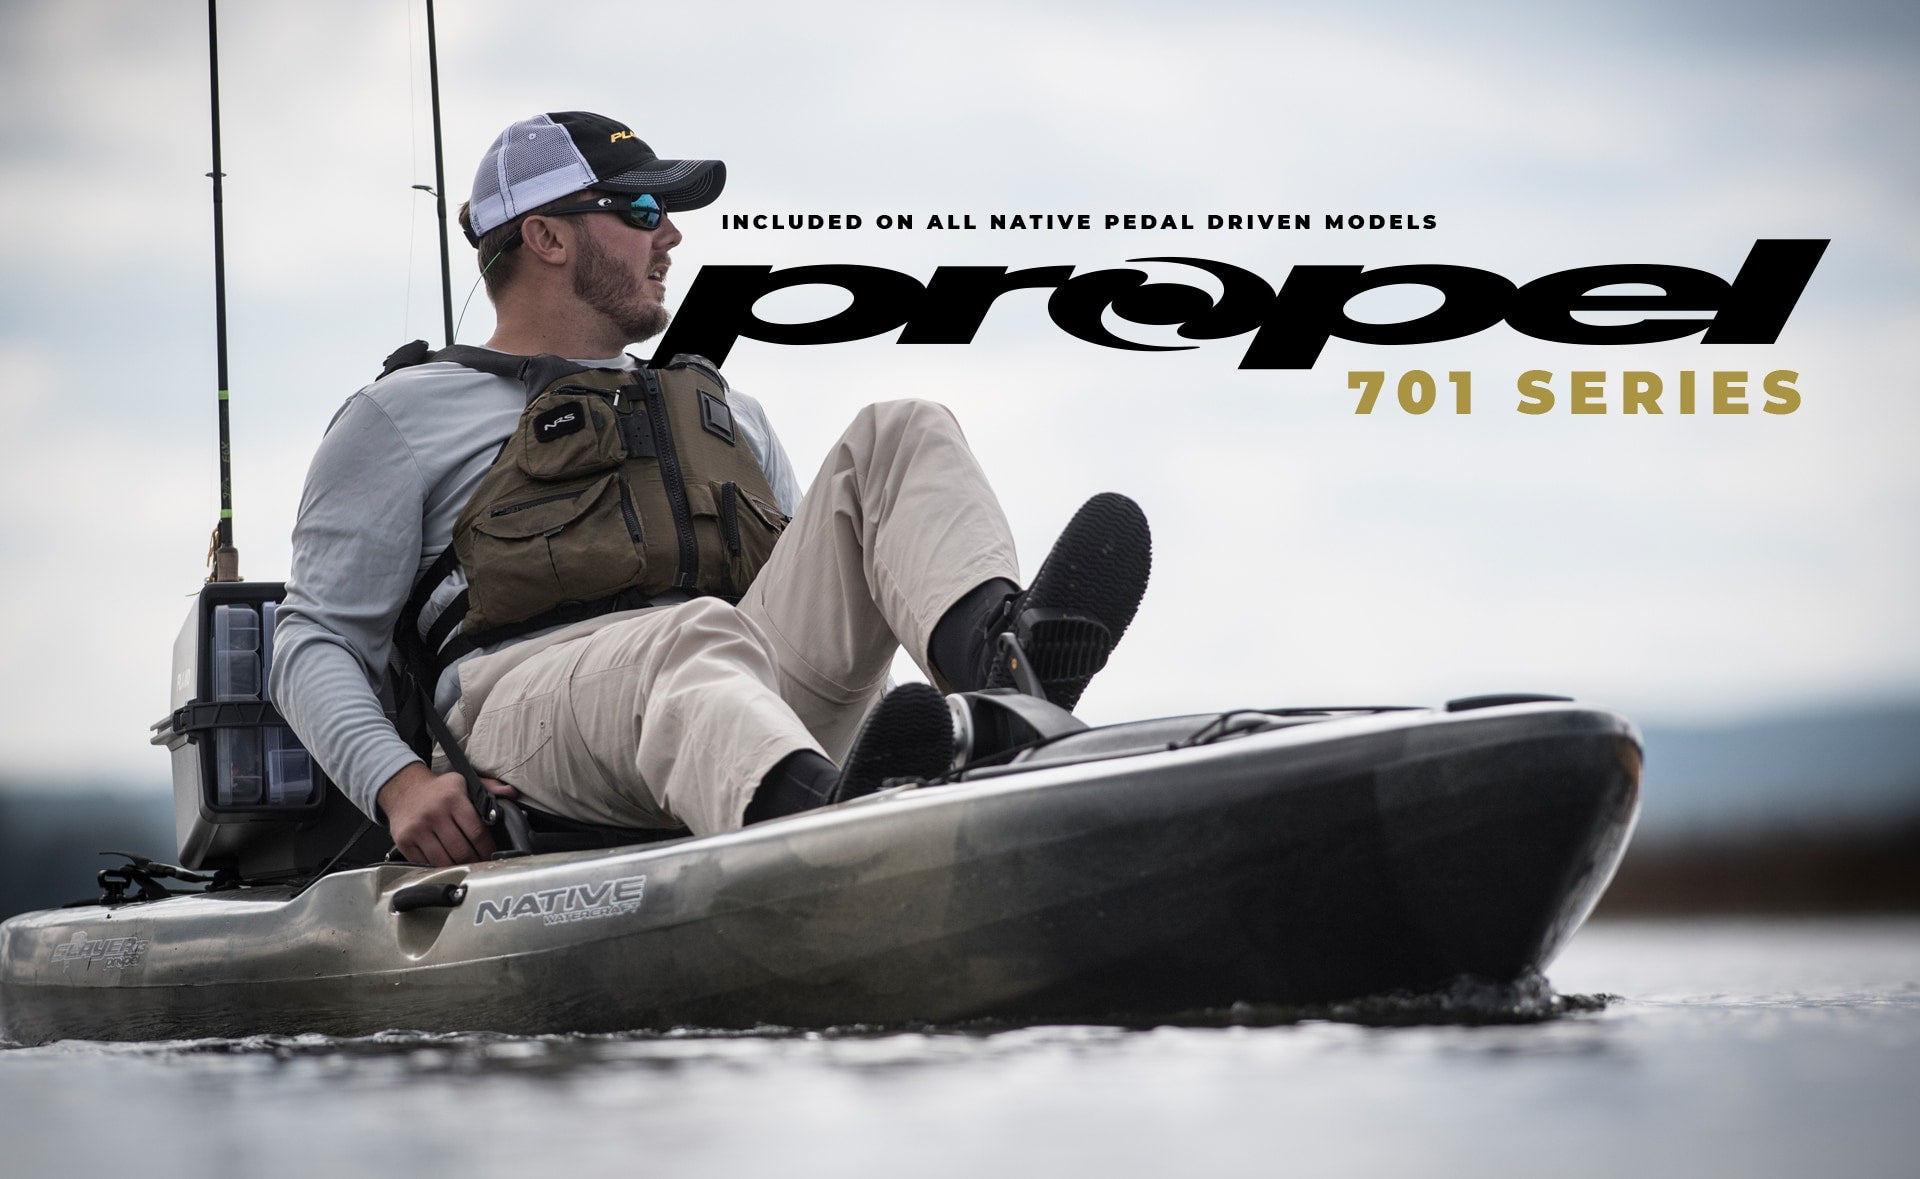 Propel 701 Series: Included on all native pedal driven models